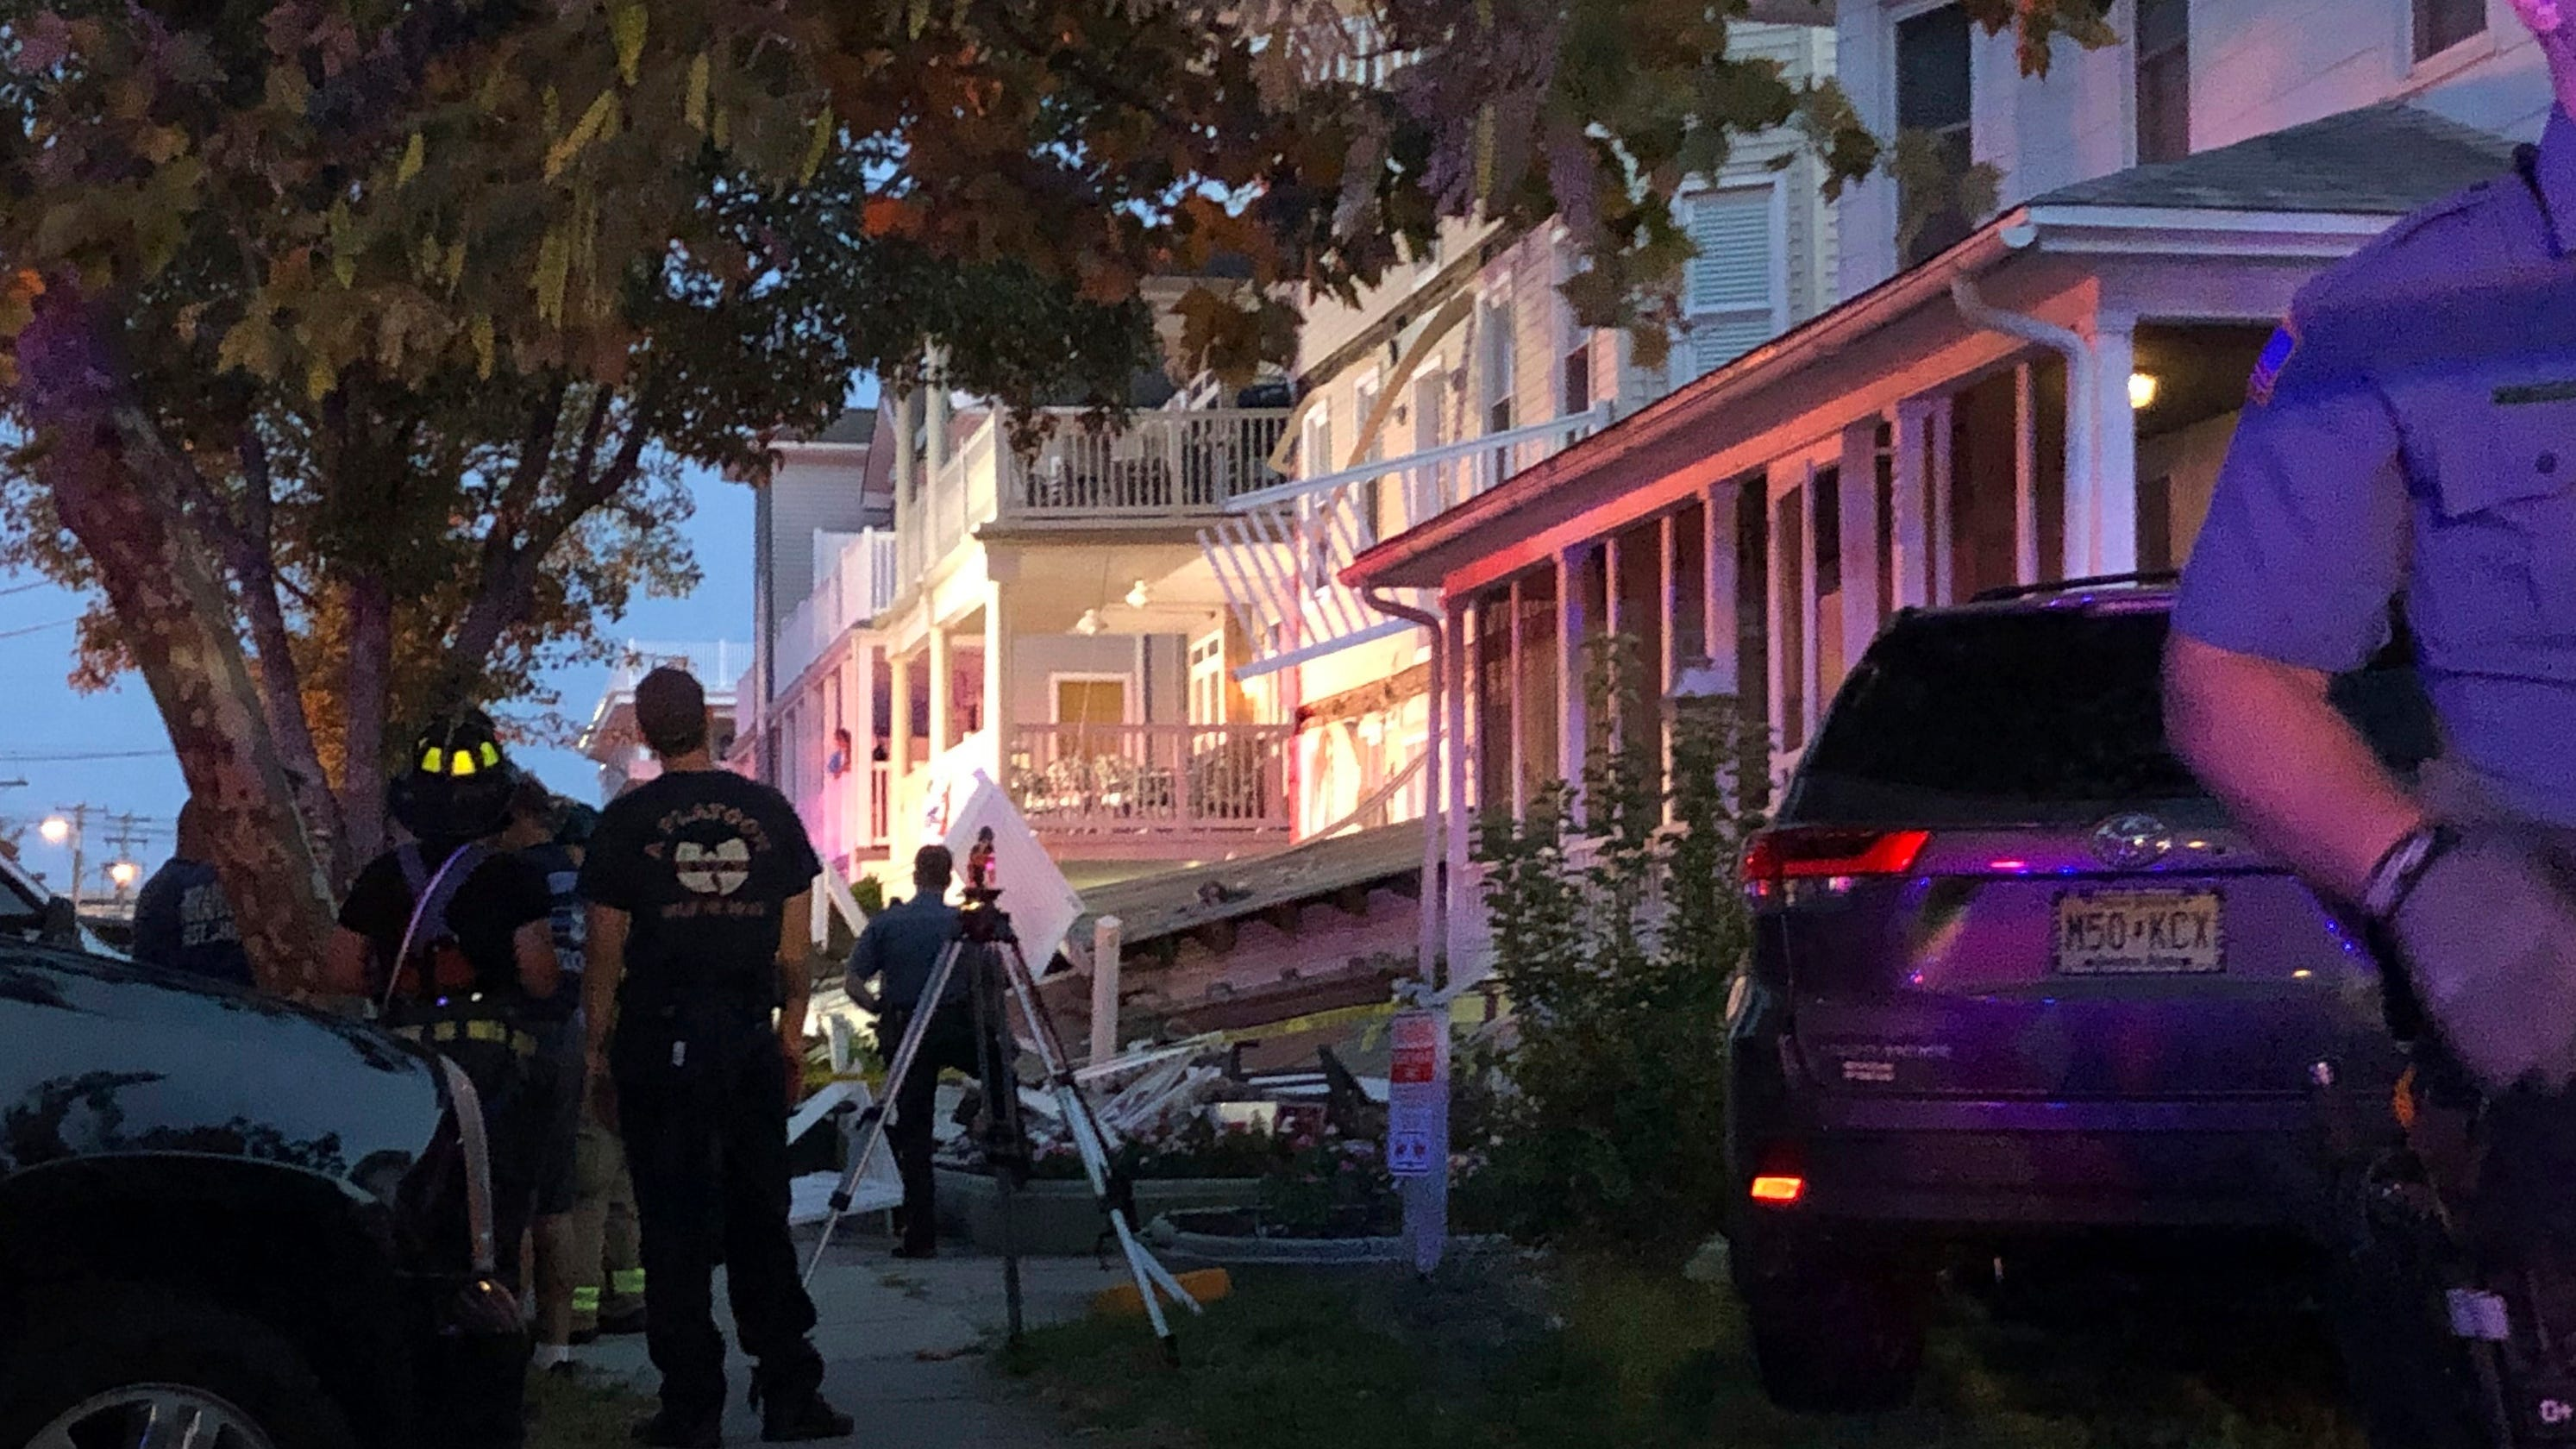 New Jersey deck collapse injures at least 22 people, officials say